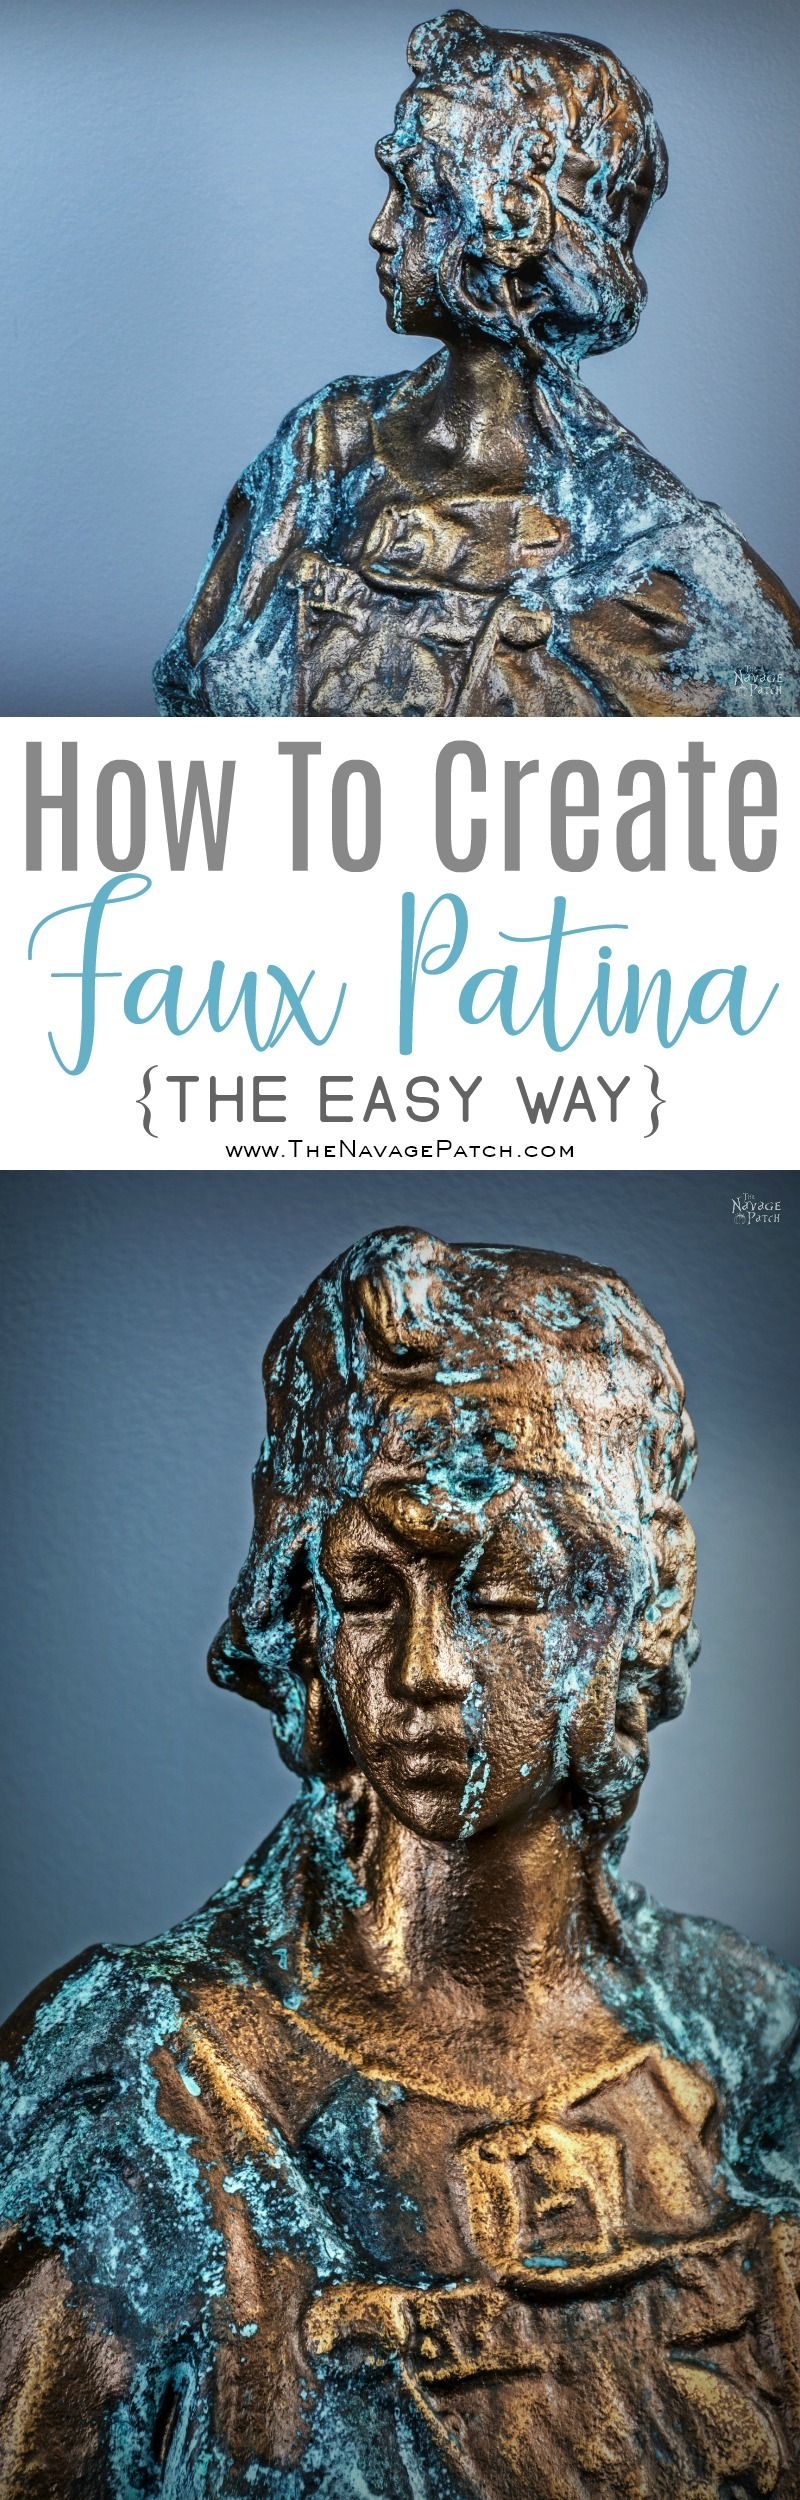 How To Create Faux Patina {Oxidized Bronze Finish Tutorial} | DIY garden decor | Bronze bust with faux patina | Updating an old ceramic bust with Modern Masters reactive paint | How to work with Modern Masters reactive paint | English gardens | Painted home decor | TheNavagePatch.com